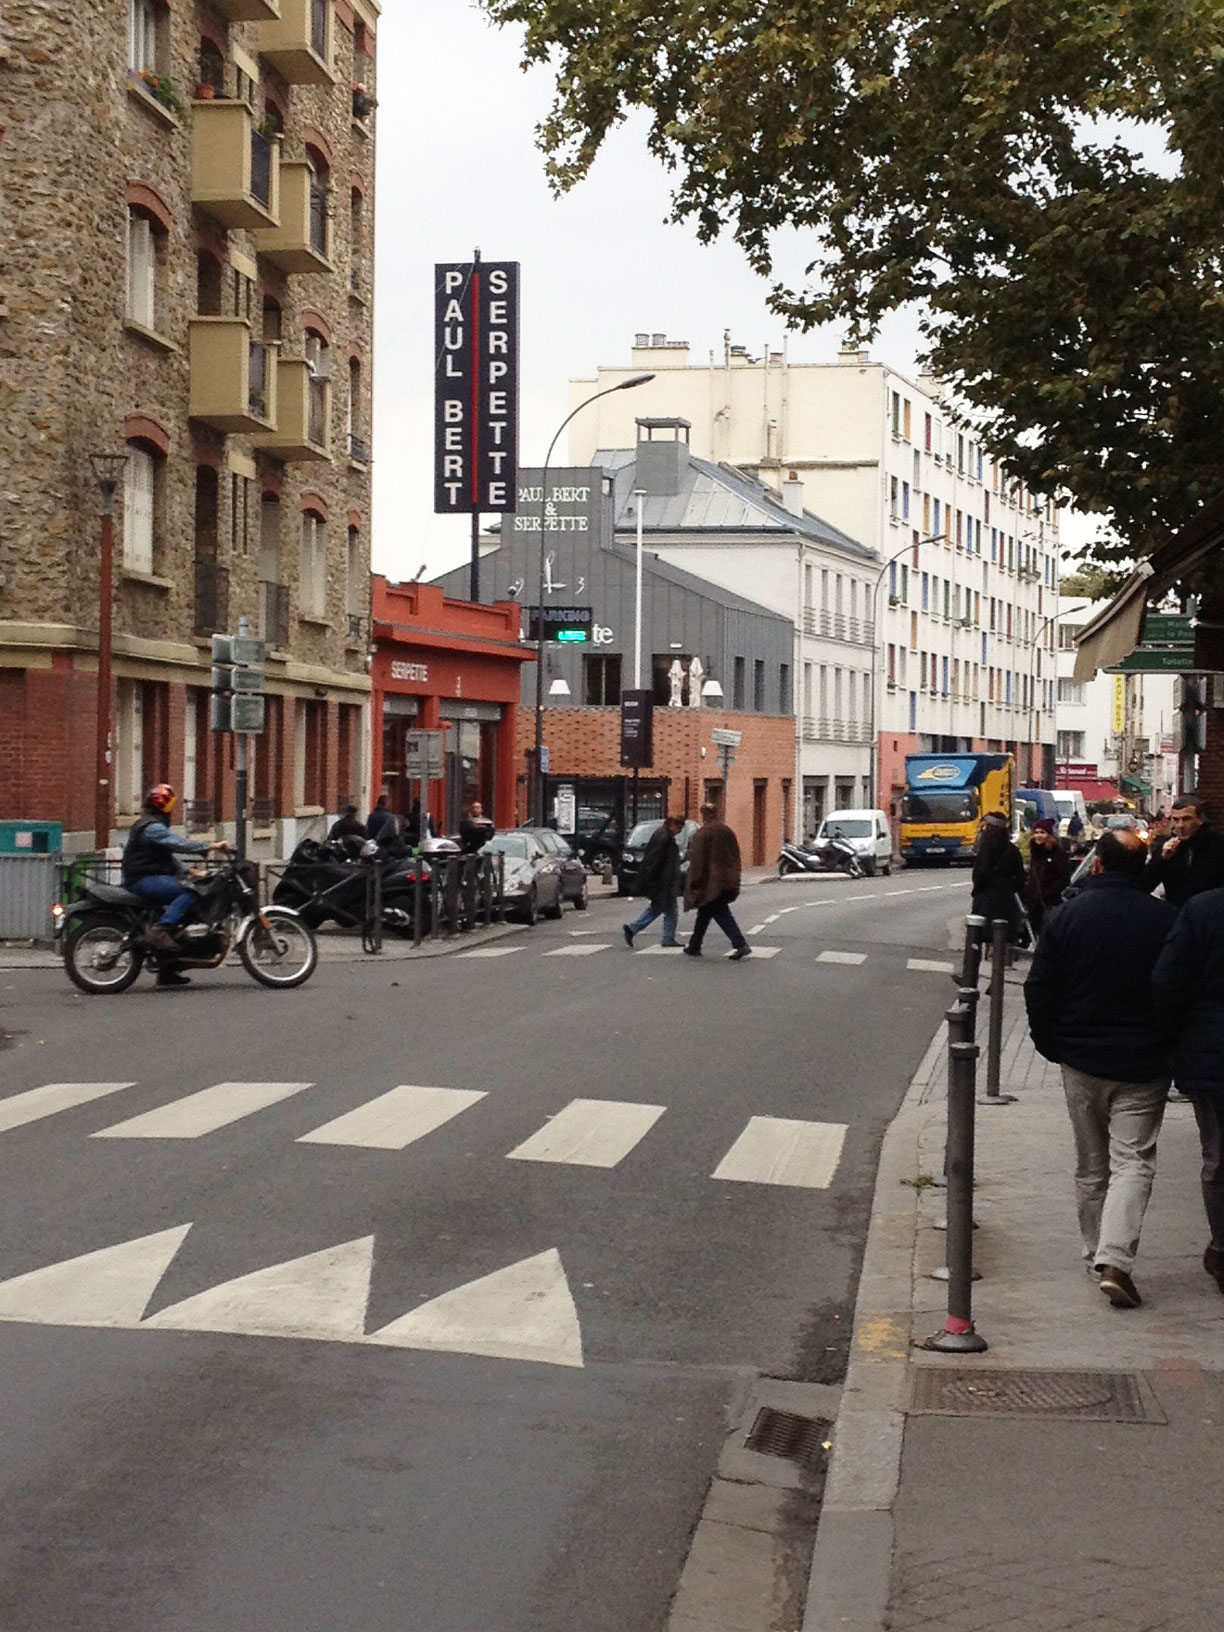 The view looking west on rue des Rosiers showing the Marché Paul Bert and Serpette